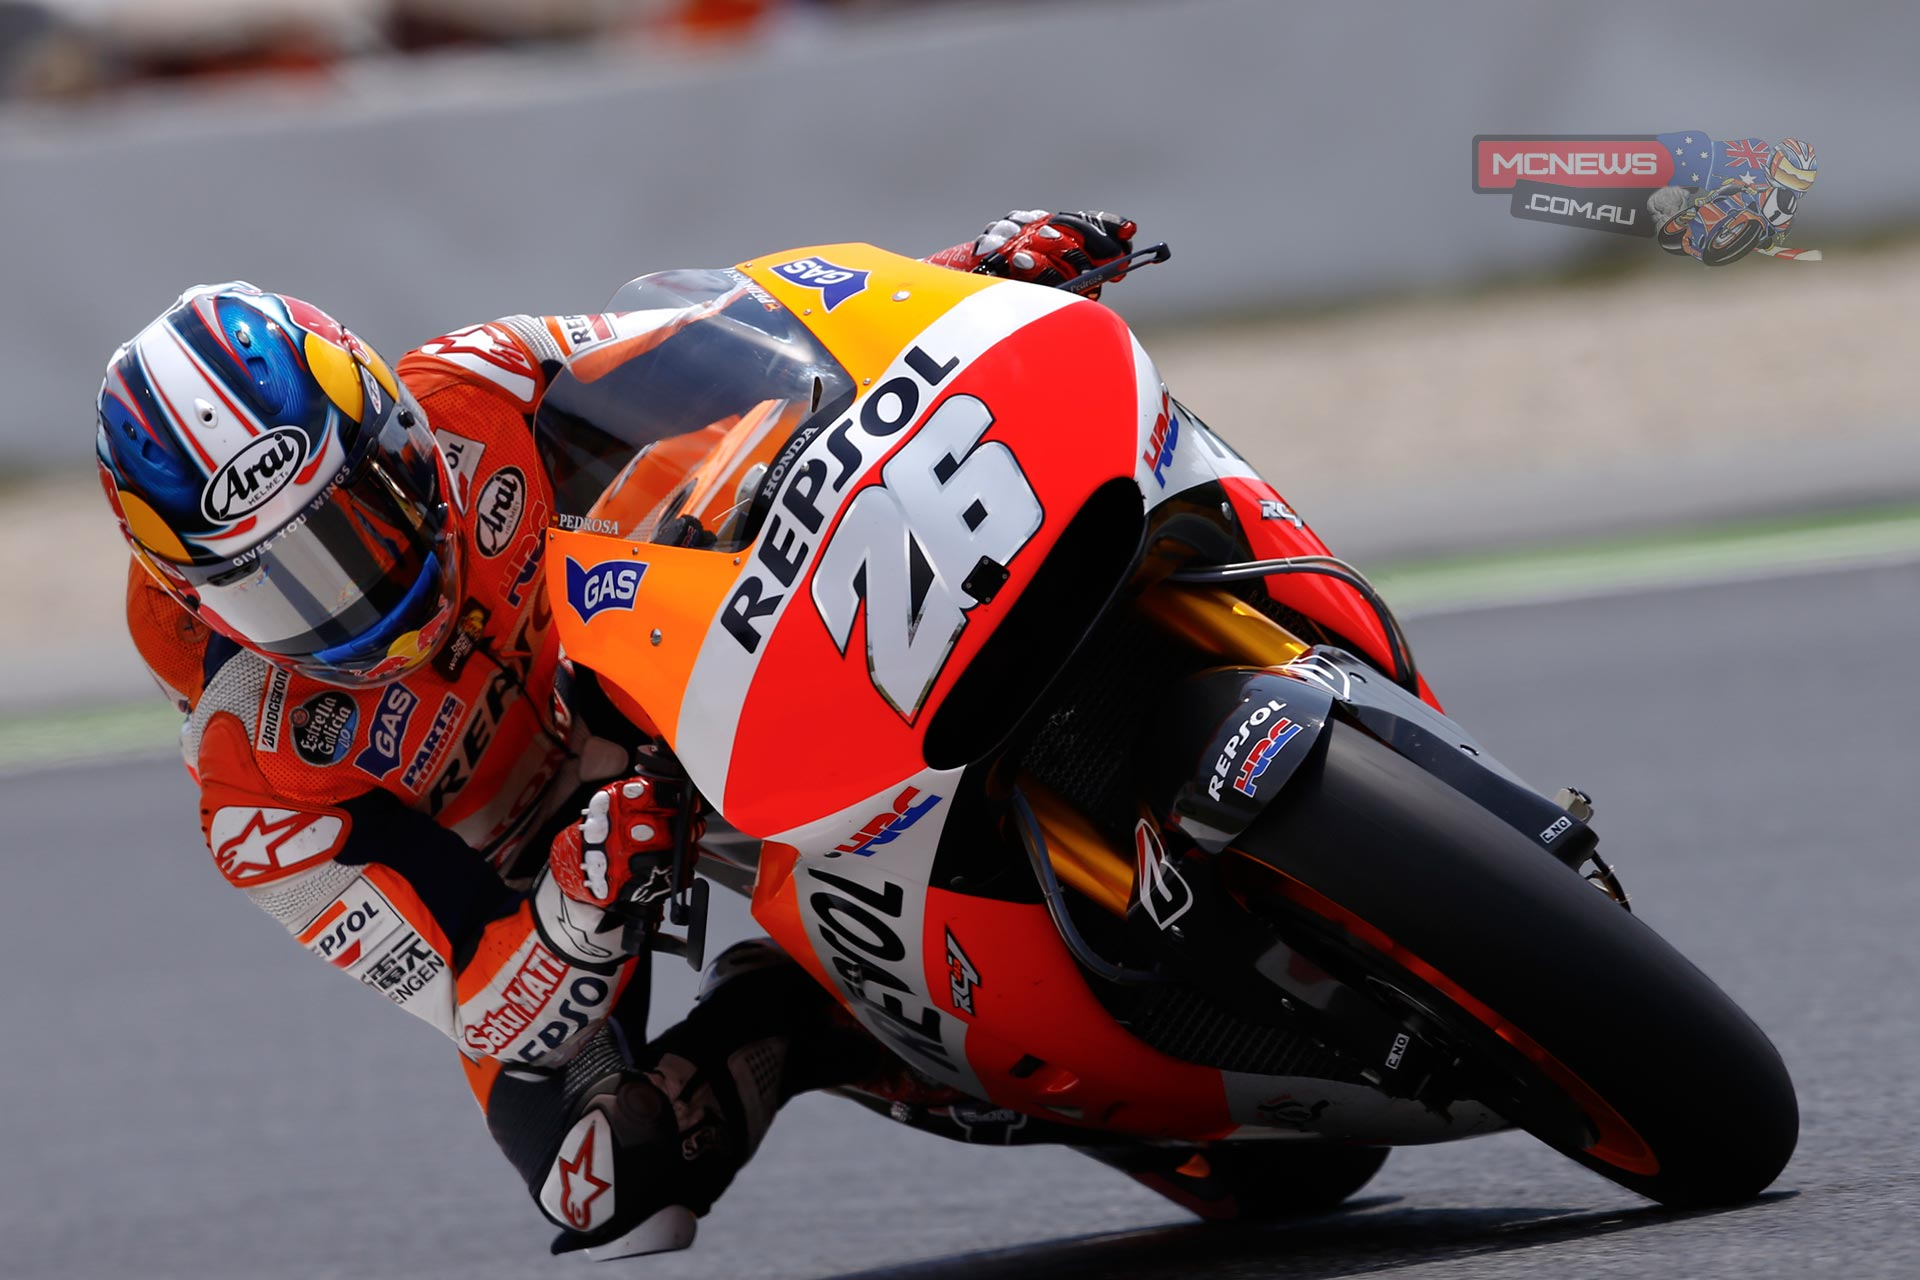 "Dani Pedrosa, Repsol Honda: 3rd - ""It was a very good, hard-fought race because we had four riders up at the front for most of the race. There was a lot of overtaking and it was very intense, because we were going so fast. Overall I am very satisfied, even though the end result was not the best. We fought hard and I felt much better physically. I'll take the positives from this race: I got my wish of being up at the front, both in practice and in the early laps of the race, and I ended the race fighting with Marc for the victory!"""